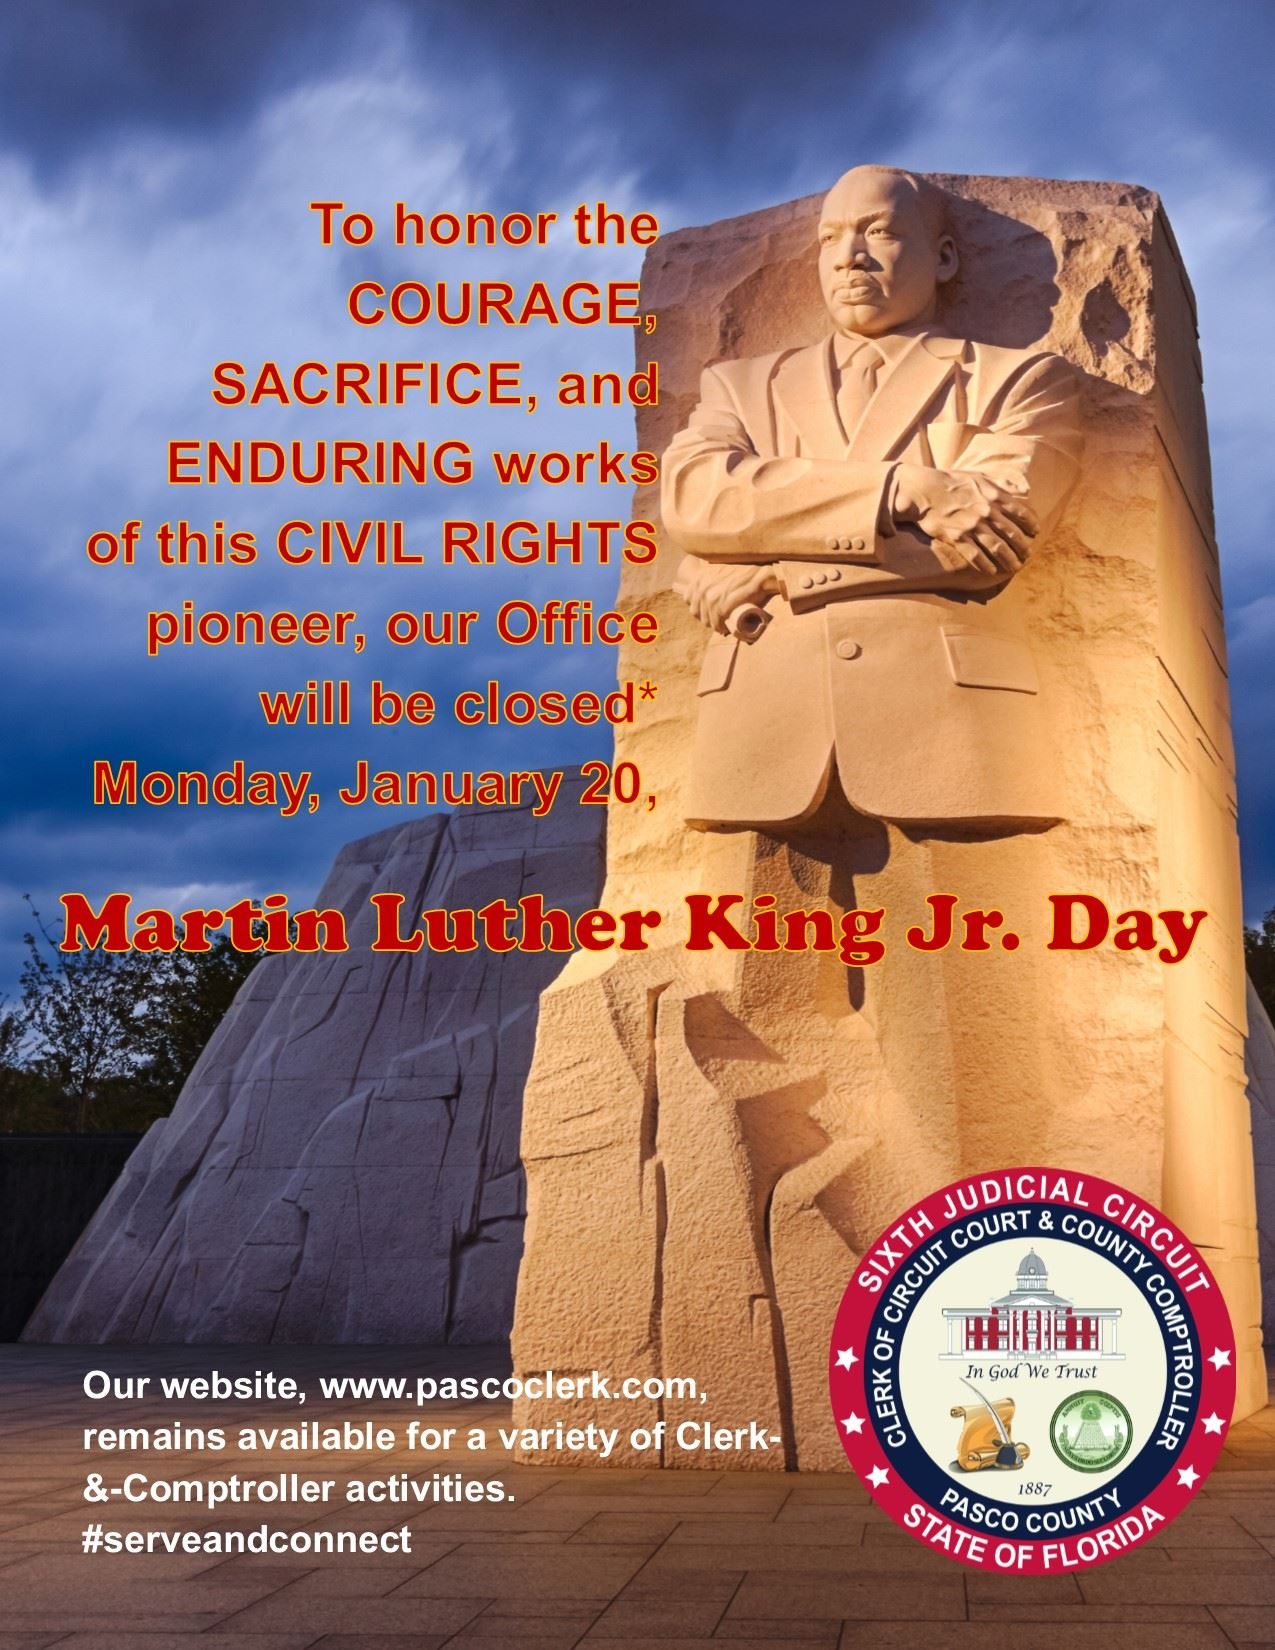 Photo of Martin Luther King Jr.'s statue, part of his Washington D.C. memorial, accompanies annou